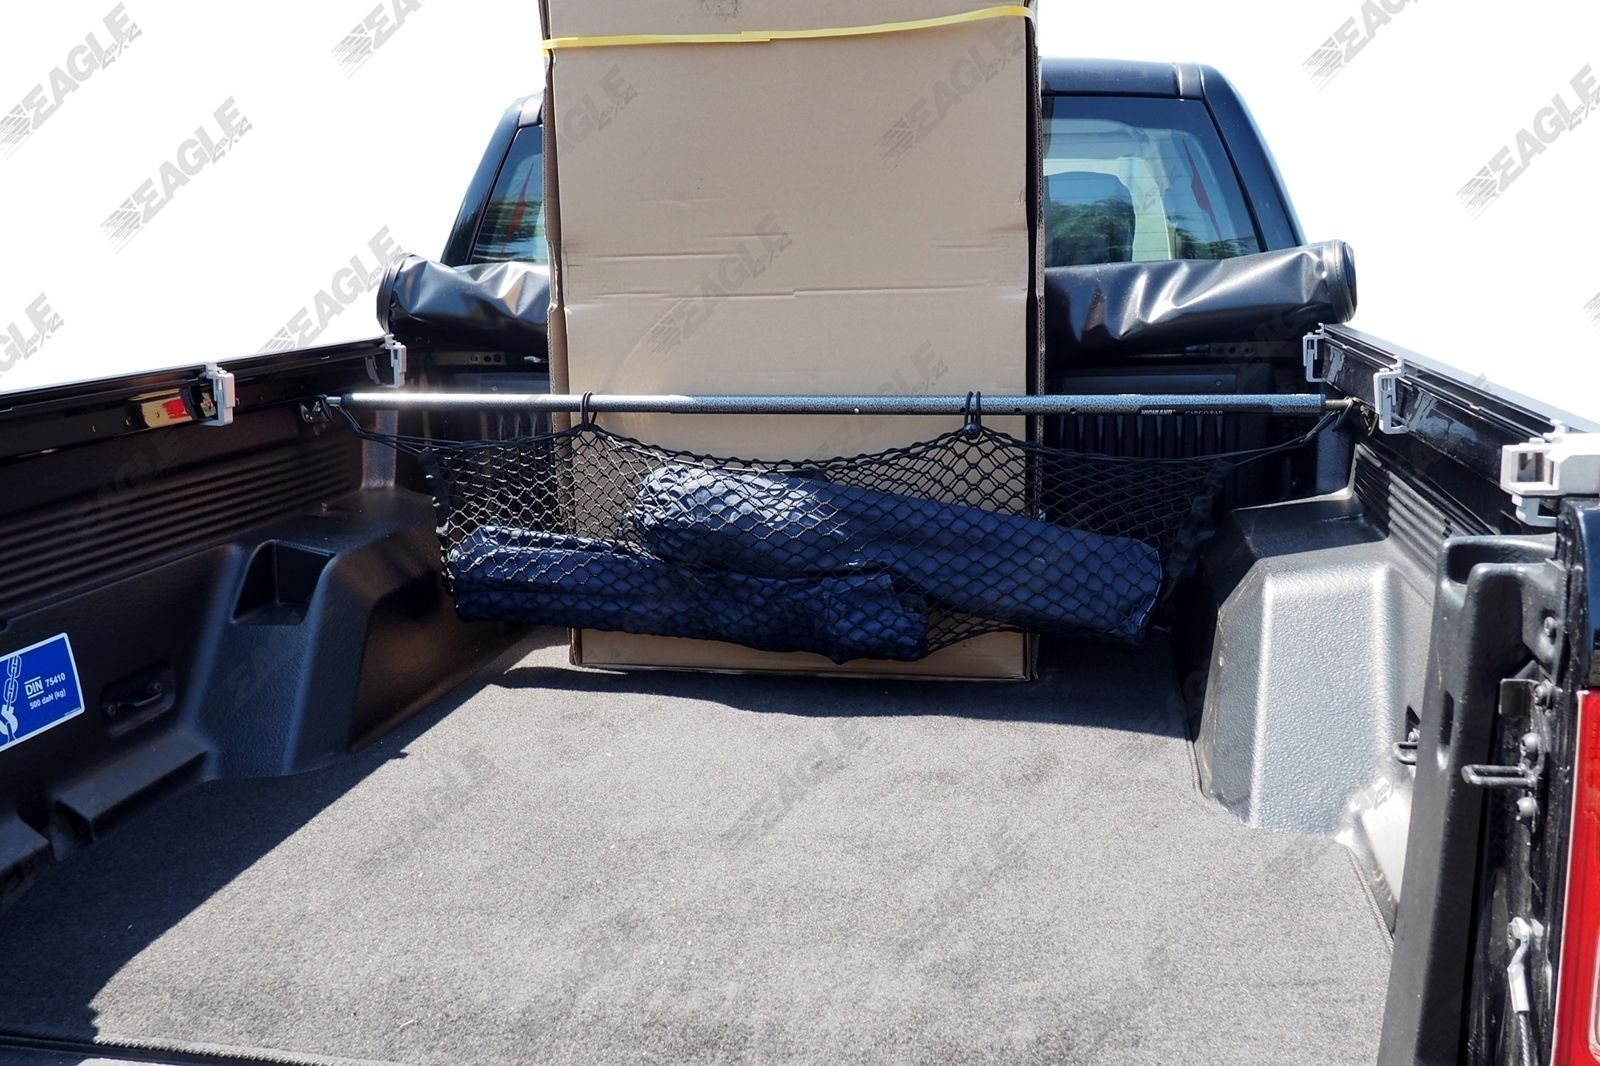 vw amarok pickup truck cargo bar / bed divider with net - bed